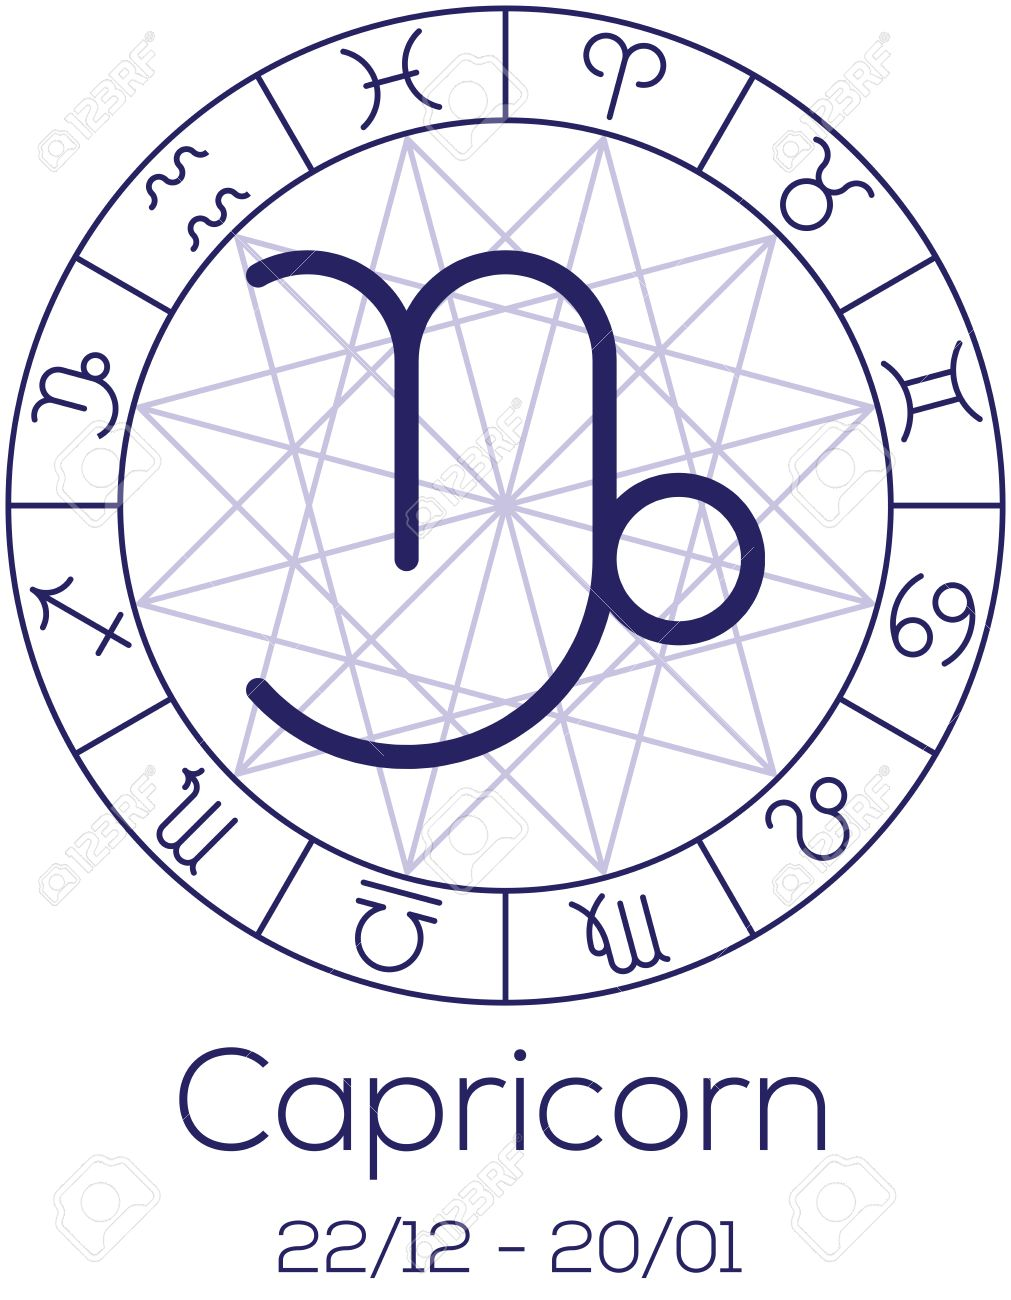 dating the same sign capricorn hookup meaning in dating